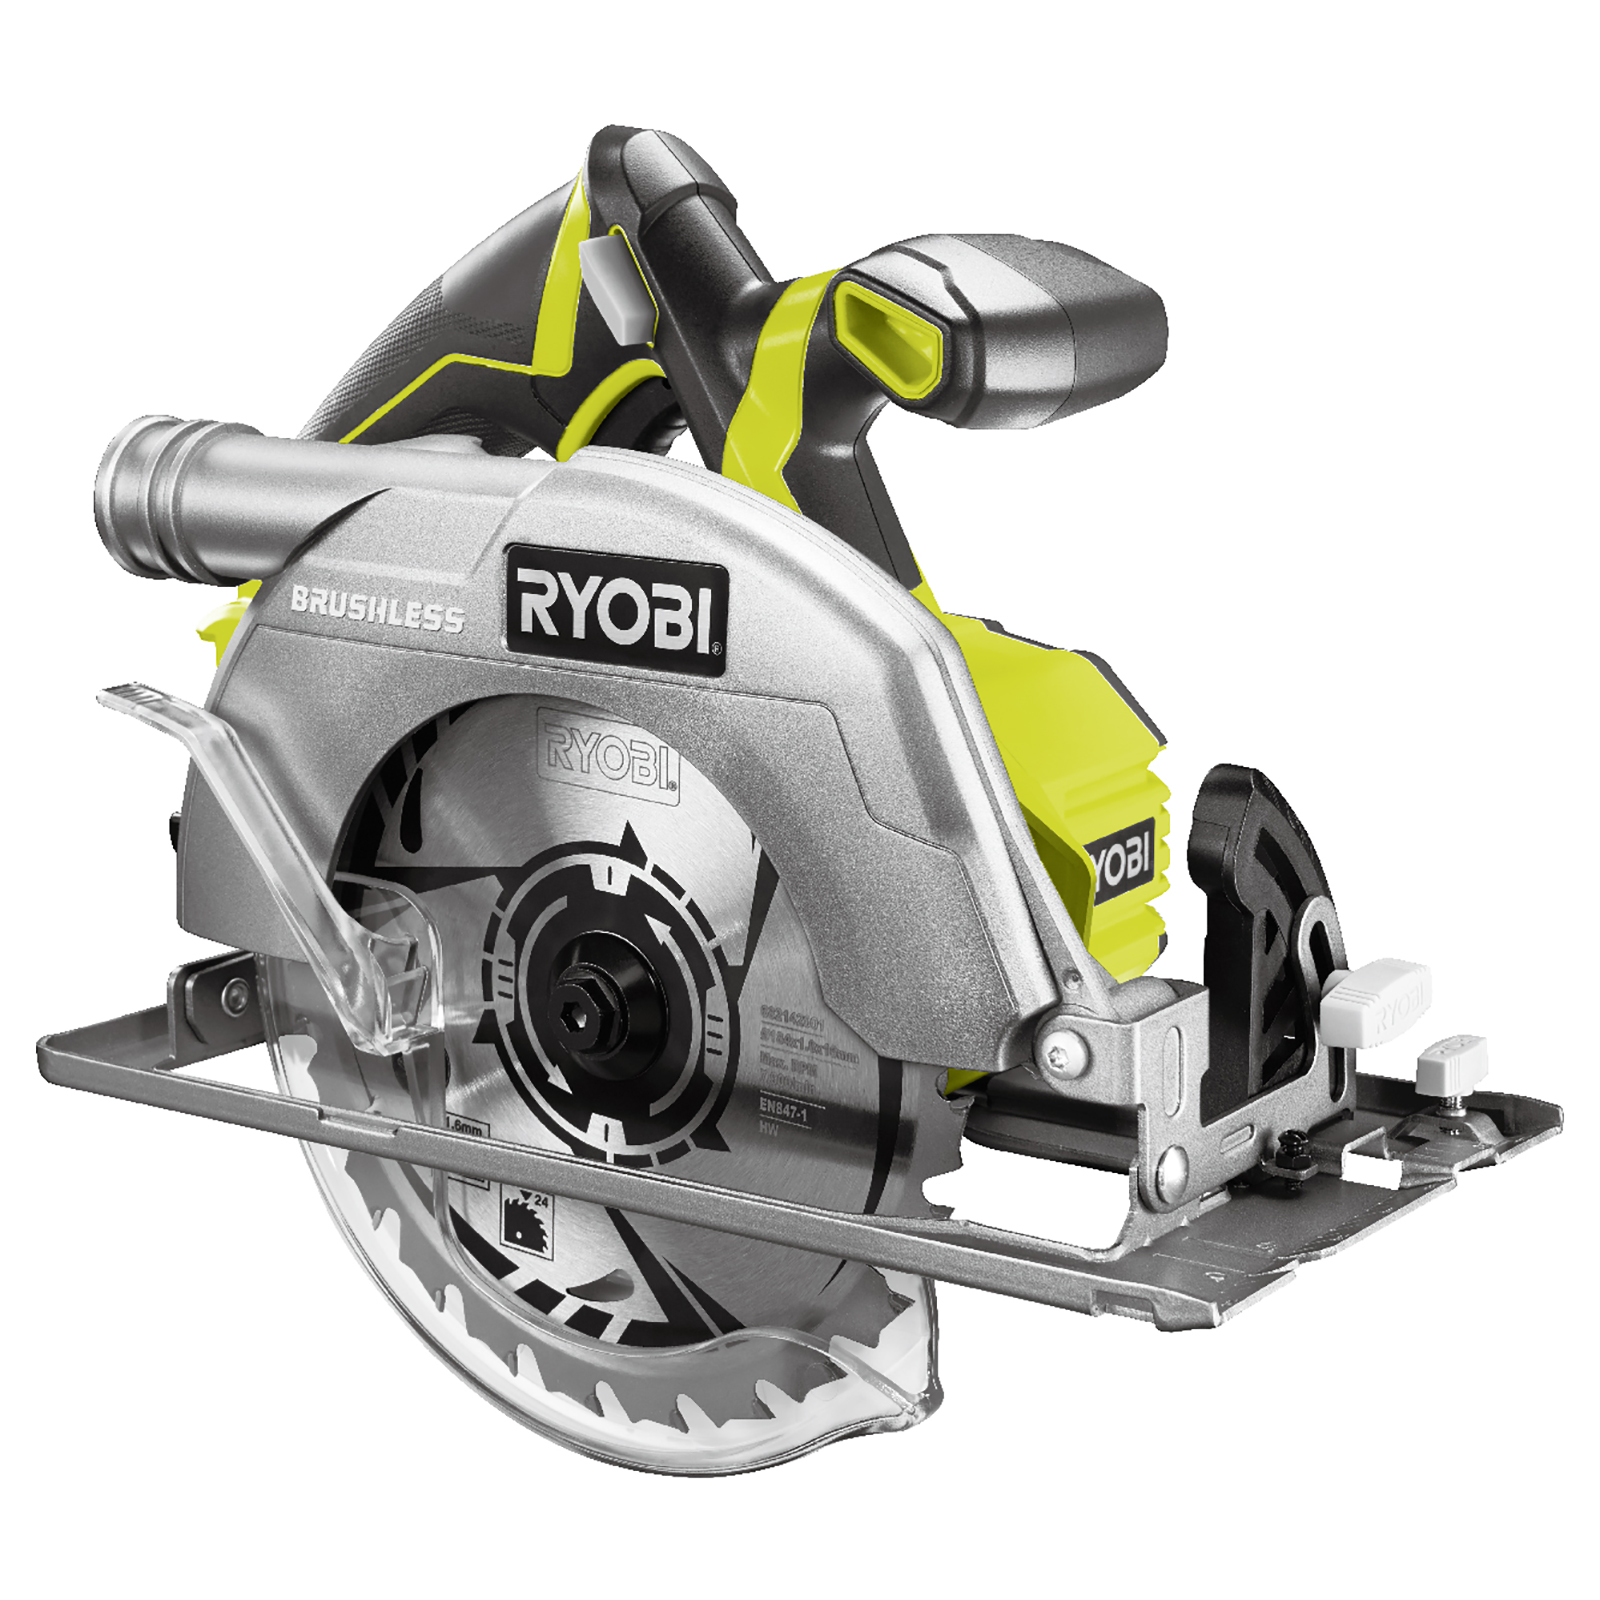 Ryobi 18v 7 14 inch brushless circular saw spotted tool craze last week we learned about a new ryobi 18v brushless angle grinder which is impressive news from ryobi they are in a relentless mission as are other keyboard keysfo Choice Image